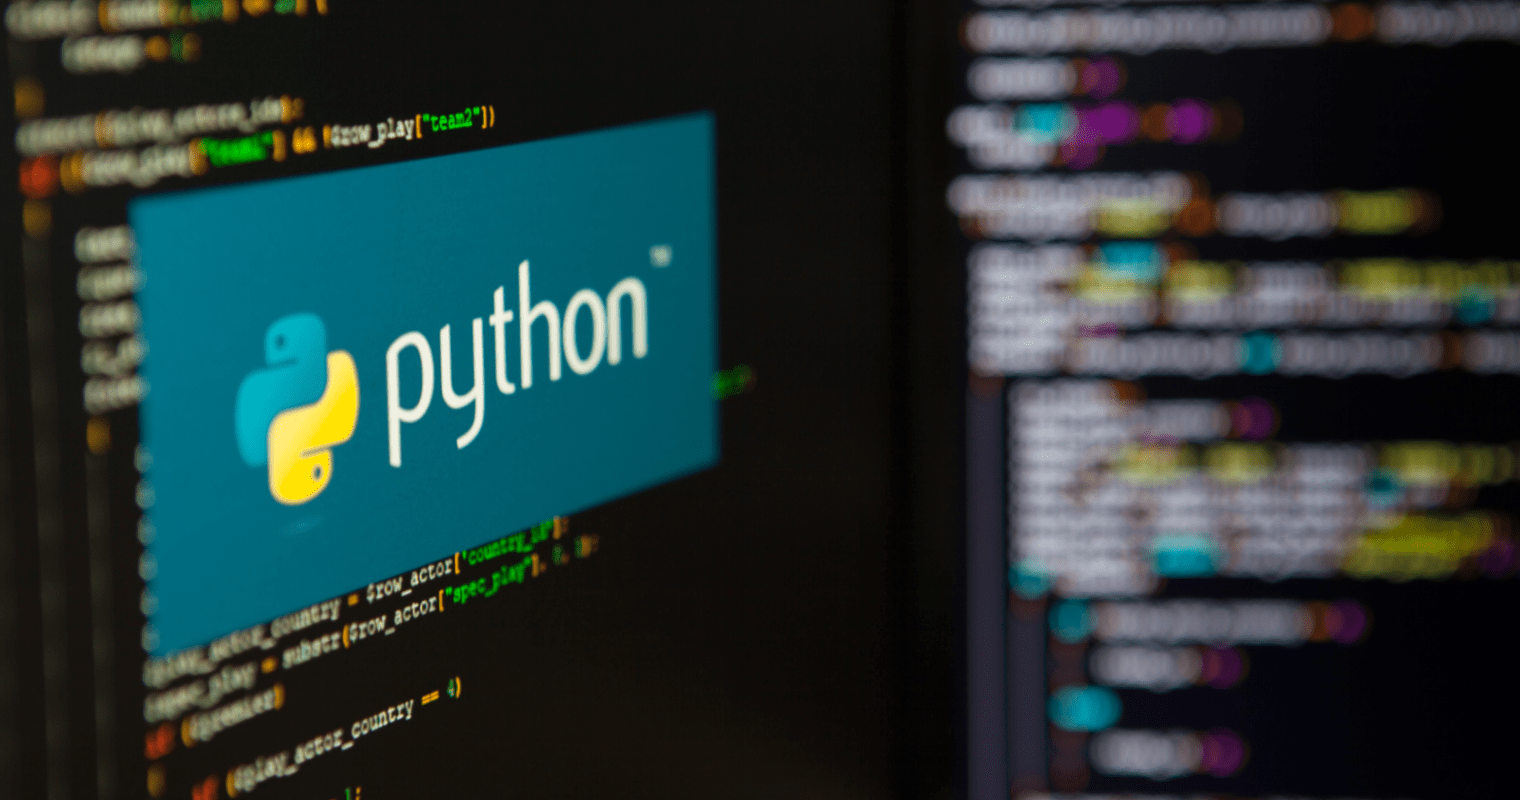 How to Get a Free Online Certificate in Python?